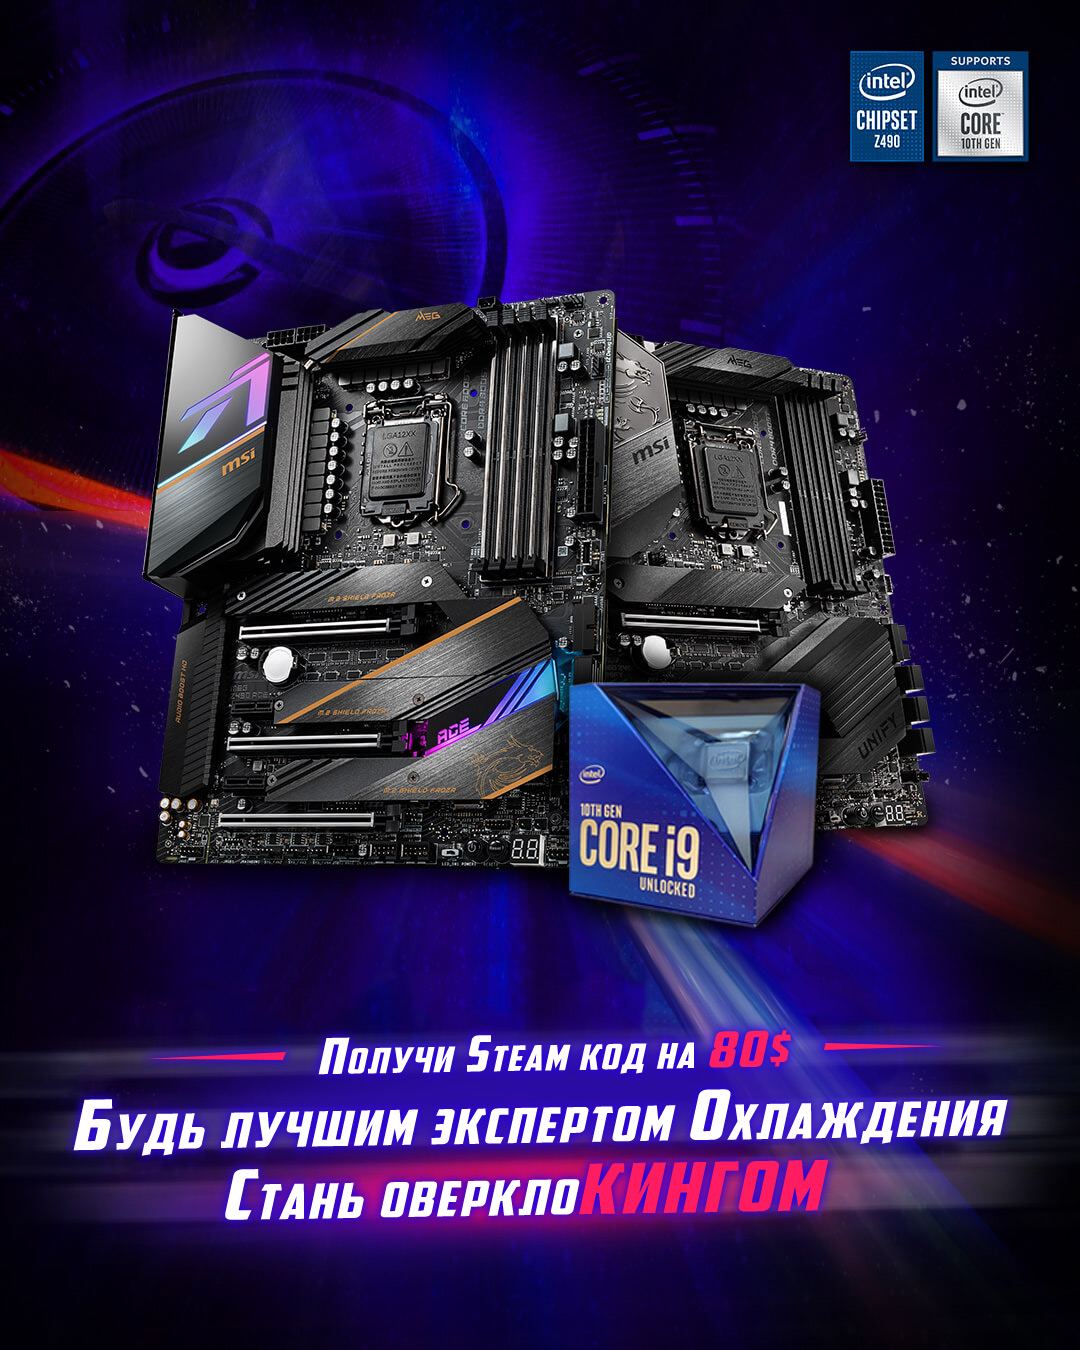 BUY SELECTED MSI Z490 MOTHERBOARD AND INTEL 10th GEN CPU TO GET STEAM WALLET